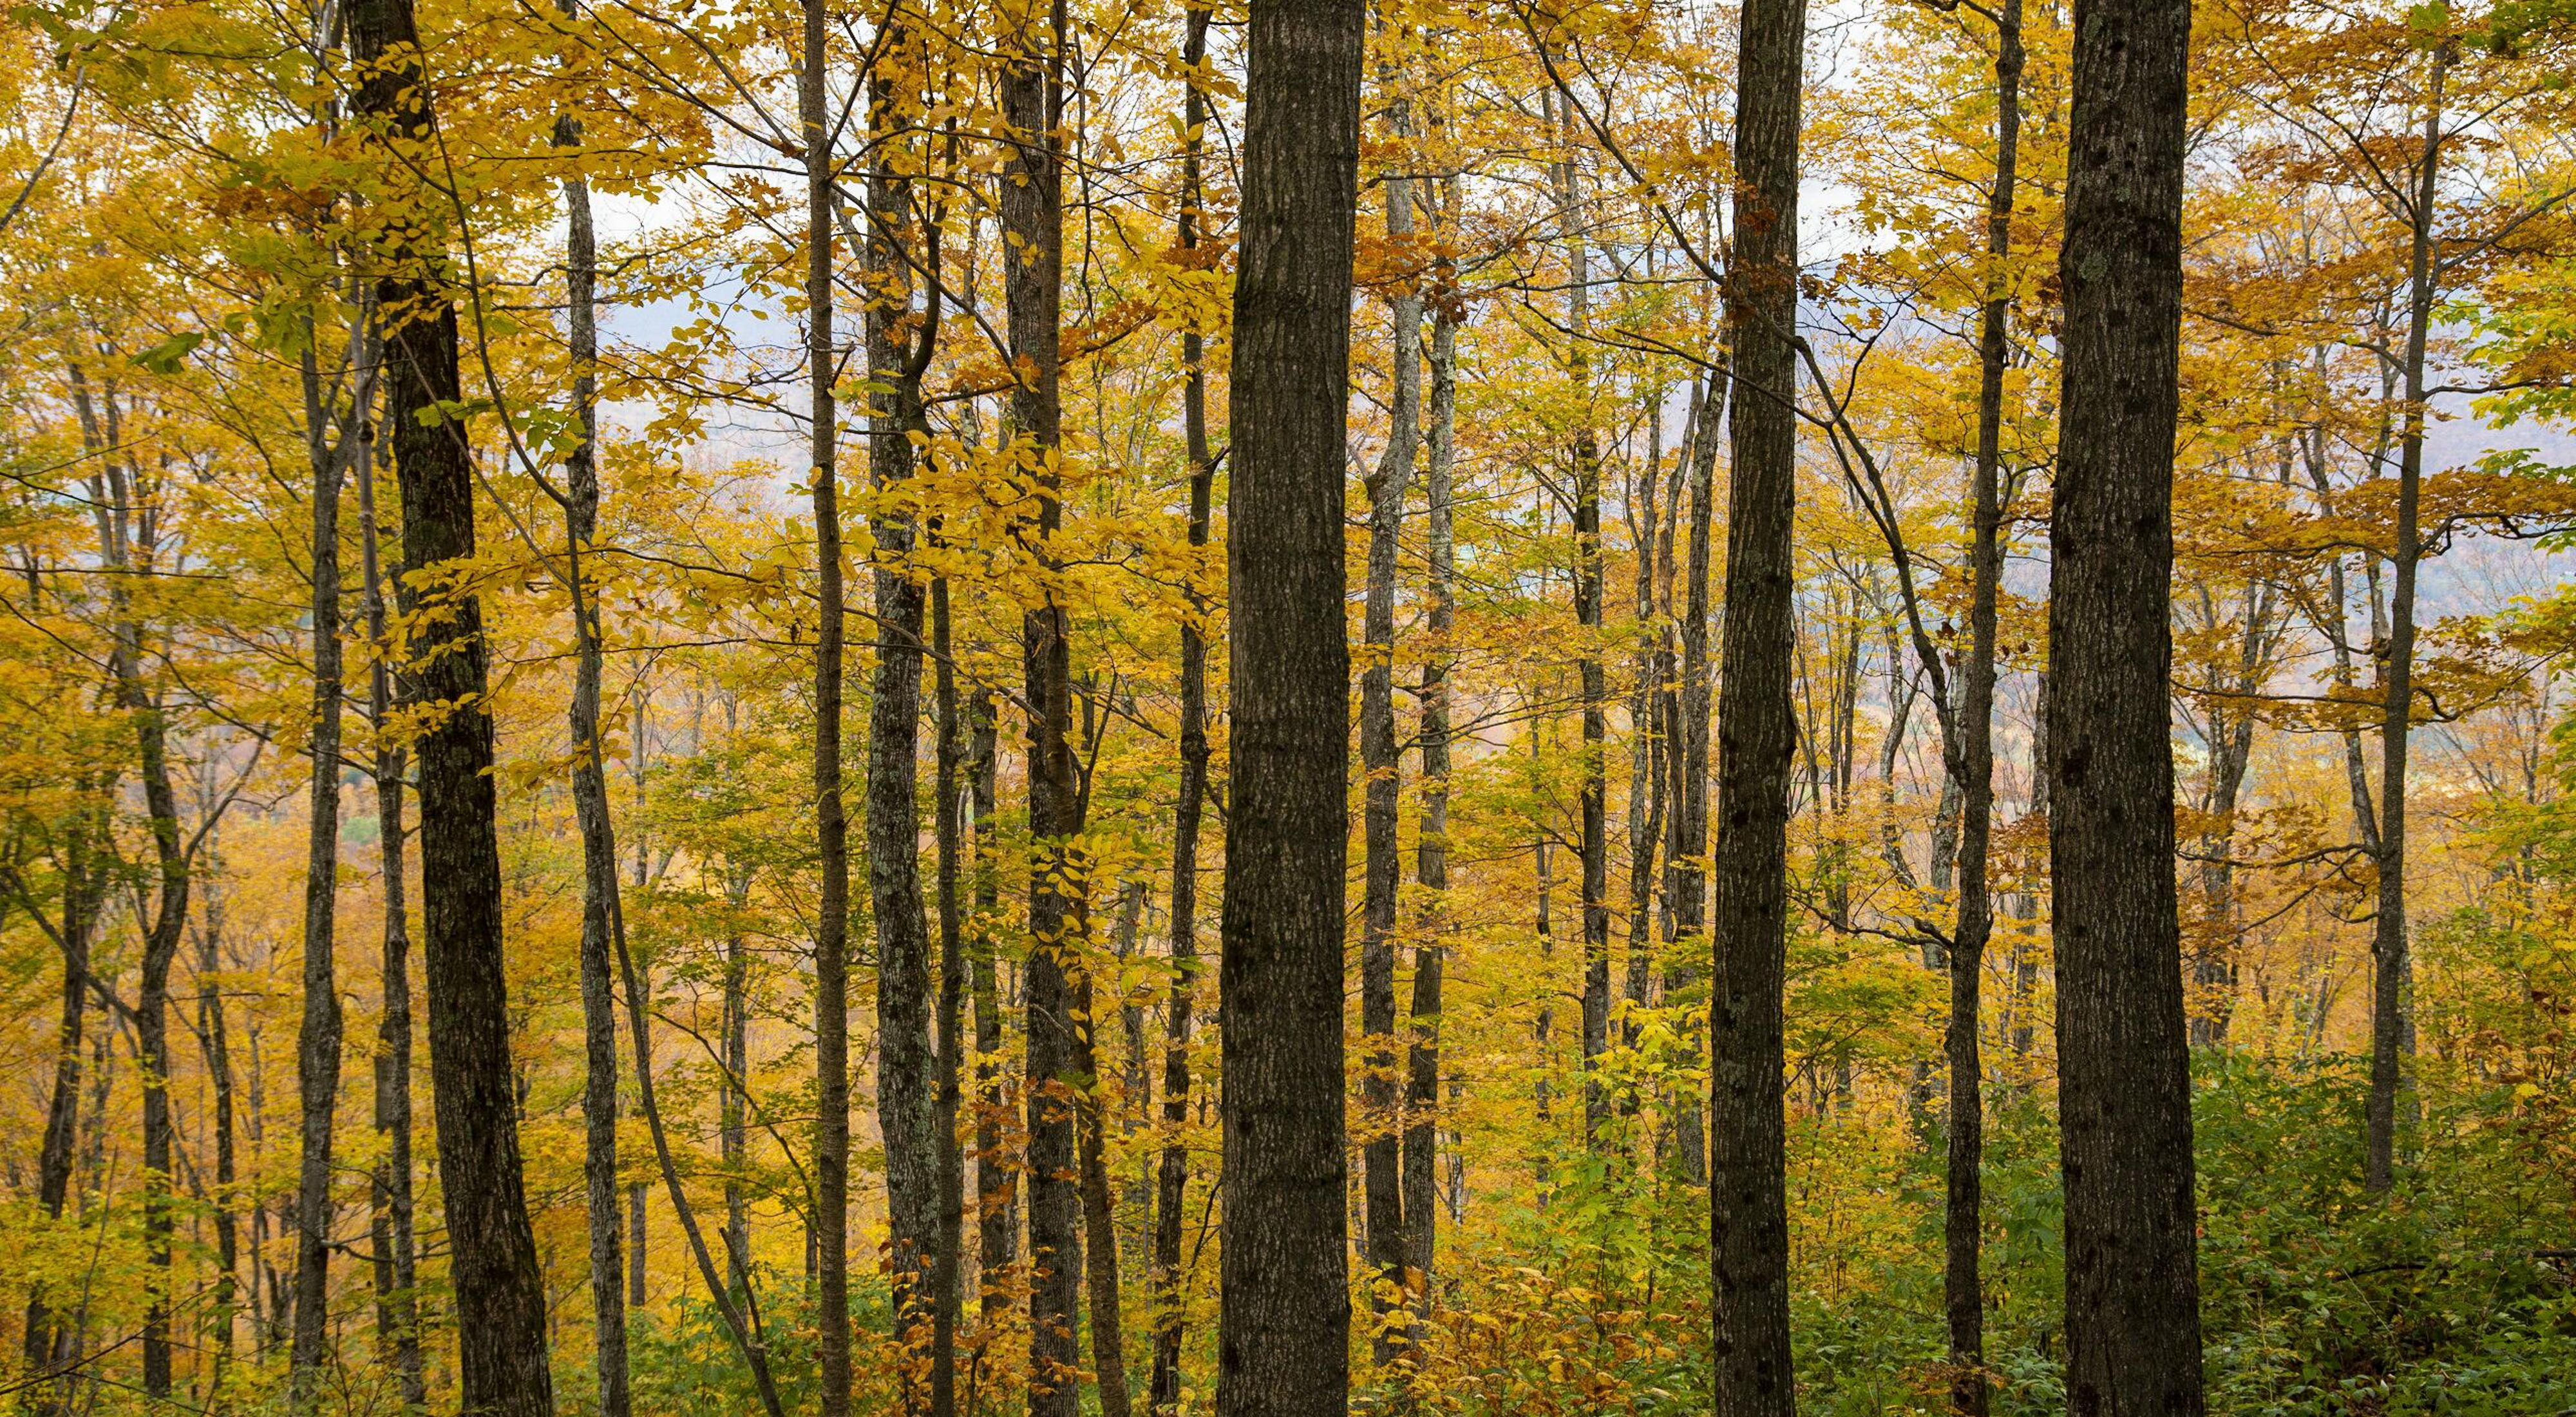 Photo of yellow fall foliage along Burnt Mountain in northern Vermont.